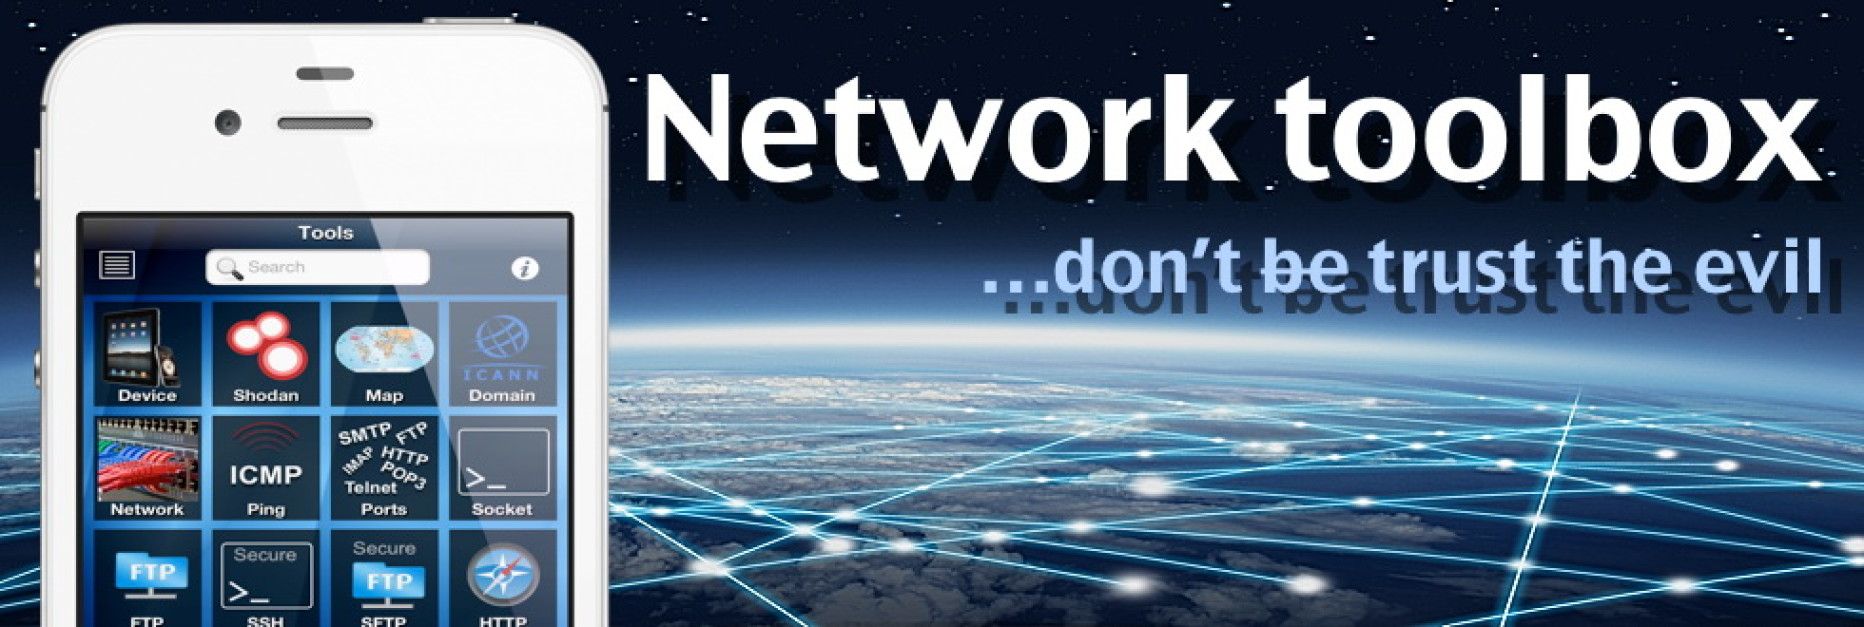 NetworkToolbox – Easy to Use Network Security and Management